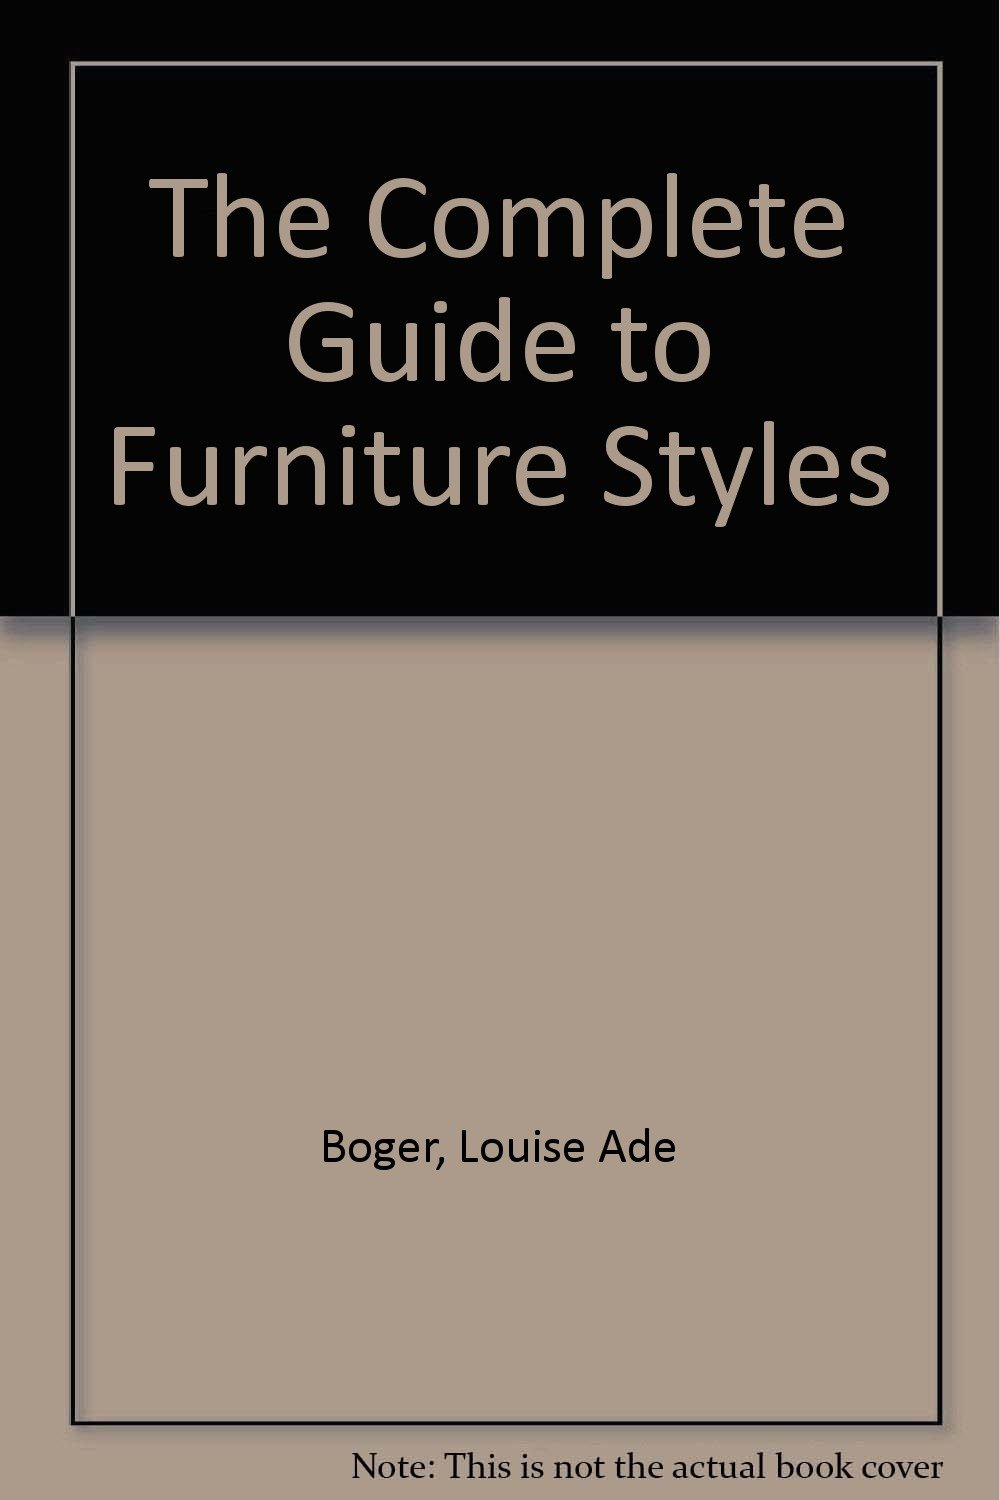 The COMPLETE GUIDE TO FURNITURE STYLES (ENLARGED EDITION)